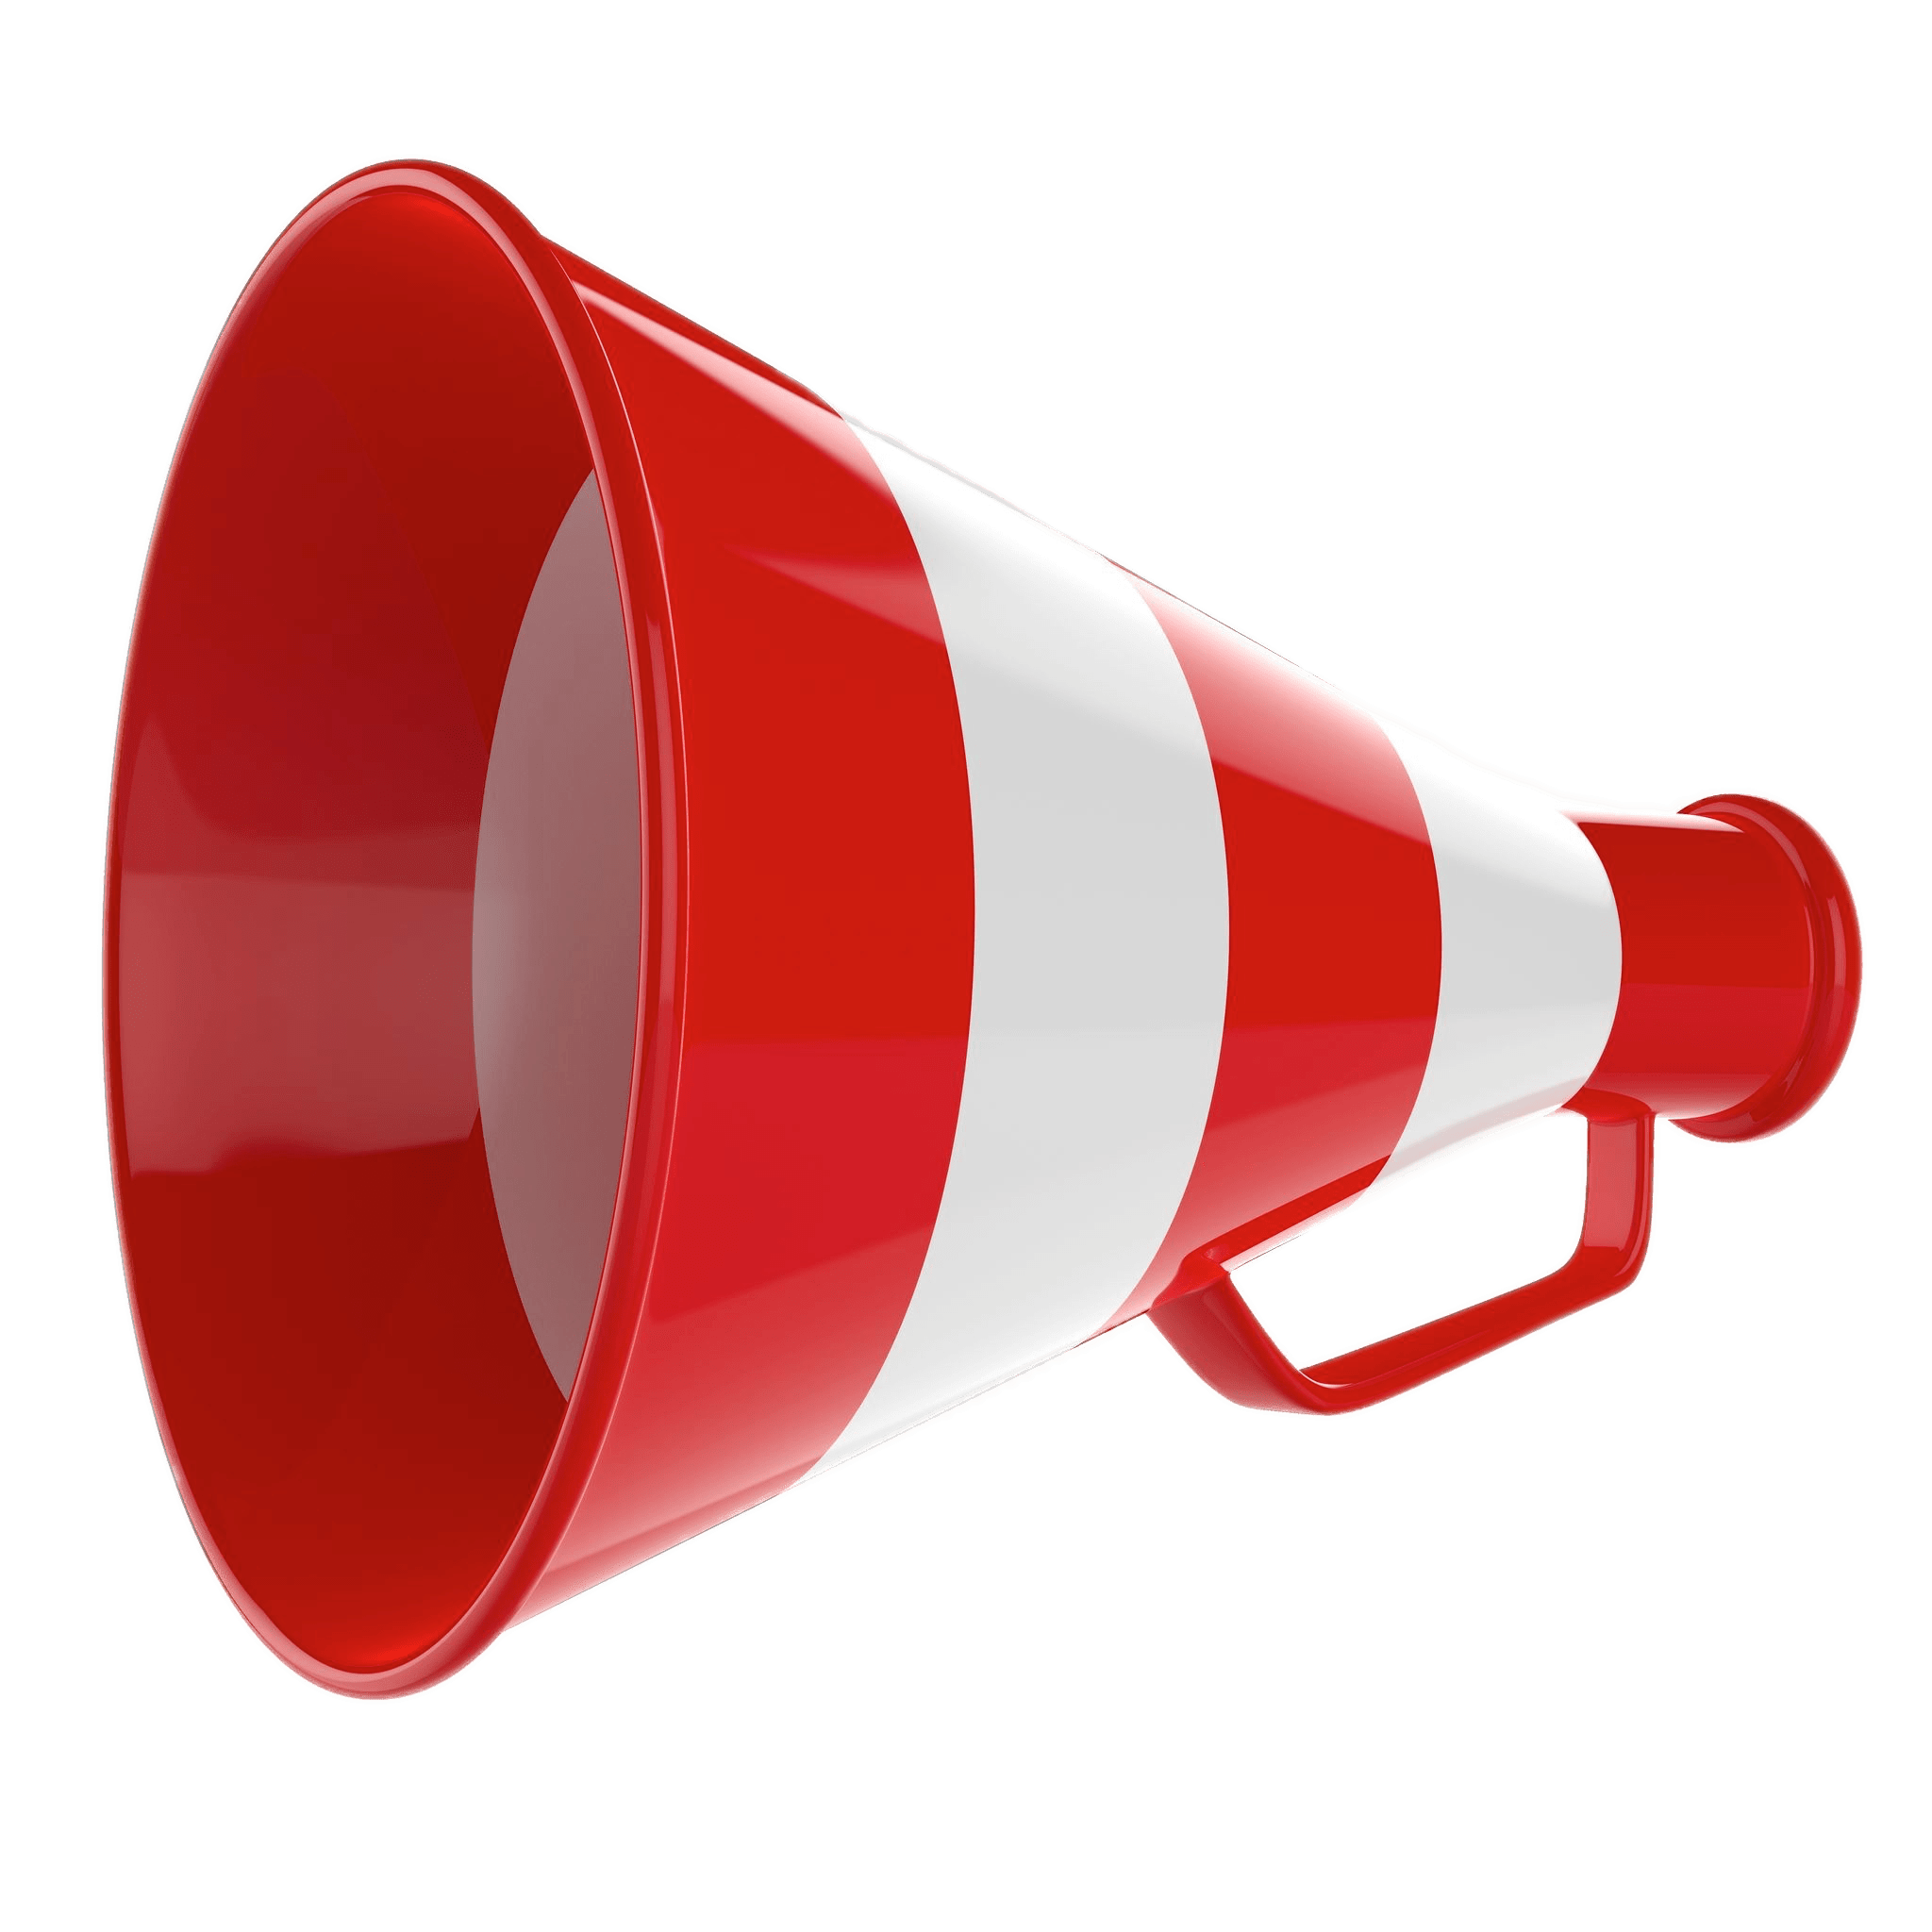 Red megaphone png. And white striped transparent